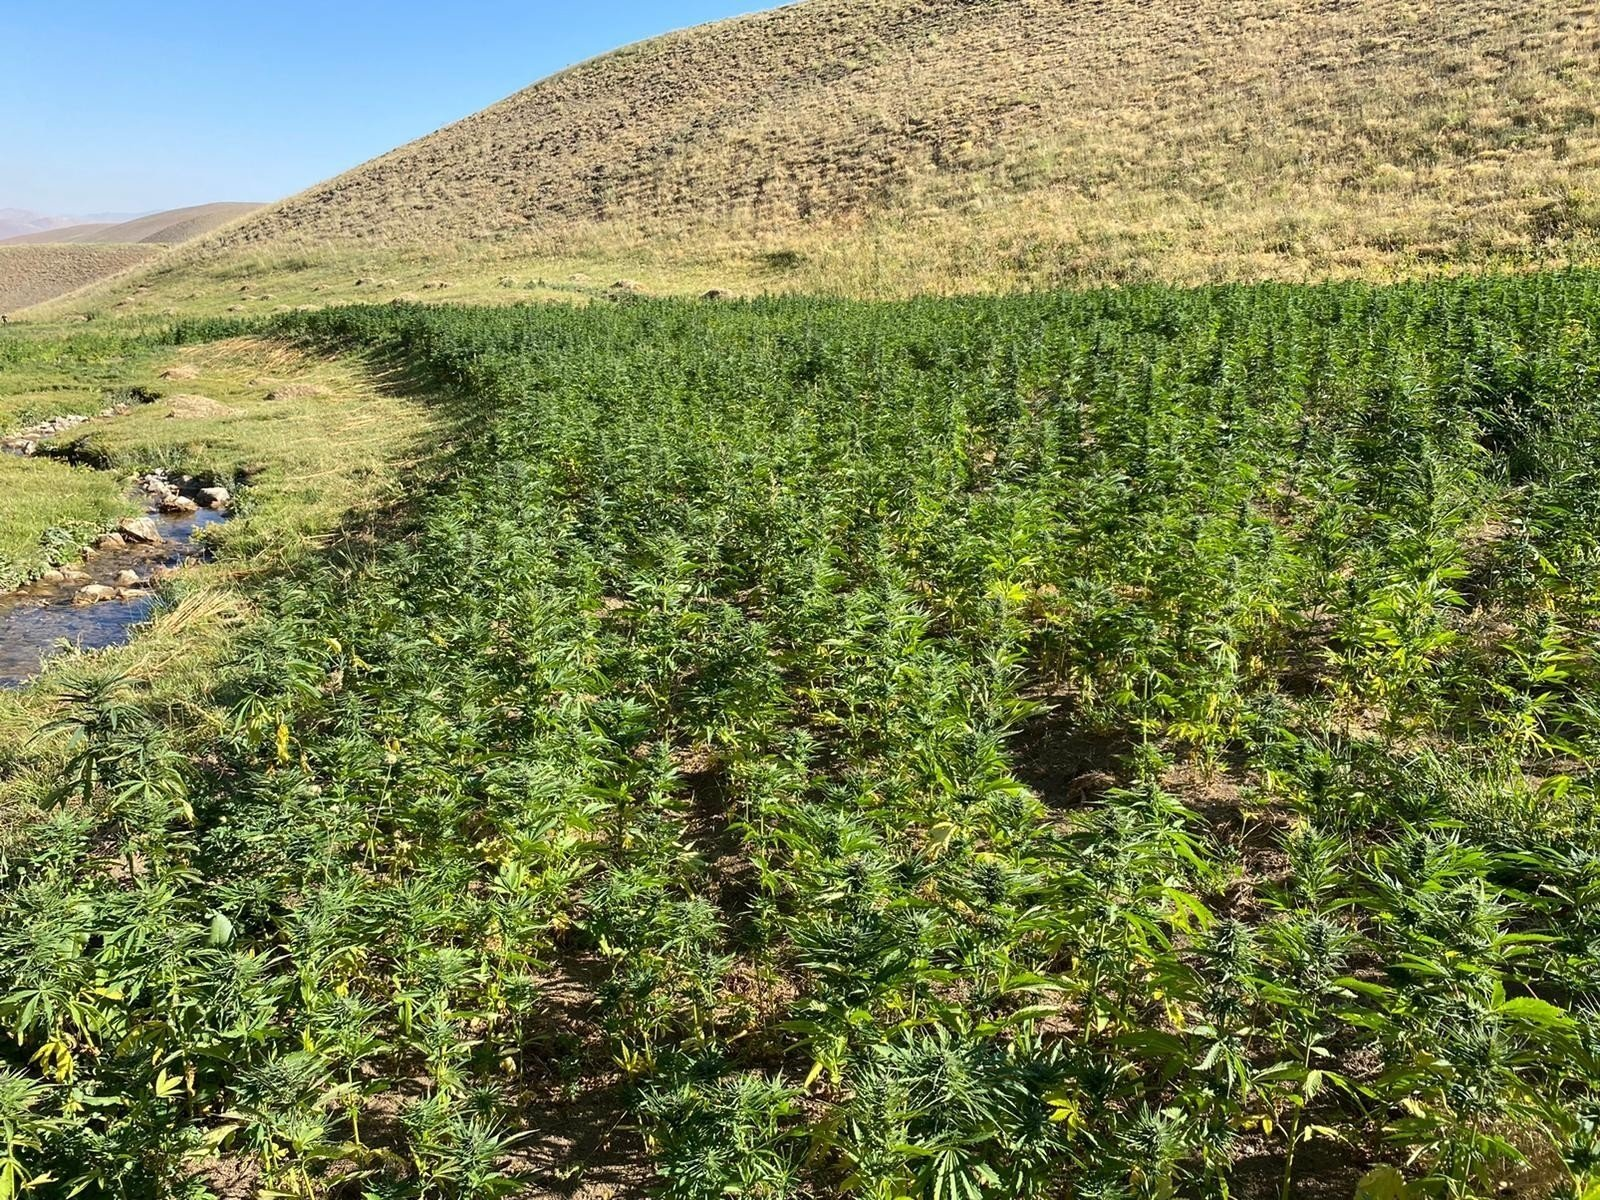 Seized cannabis gardens in the countryside of Van province, eastern Turkey, Aug. 22, 2020. (IHA Photo)